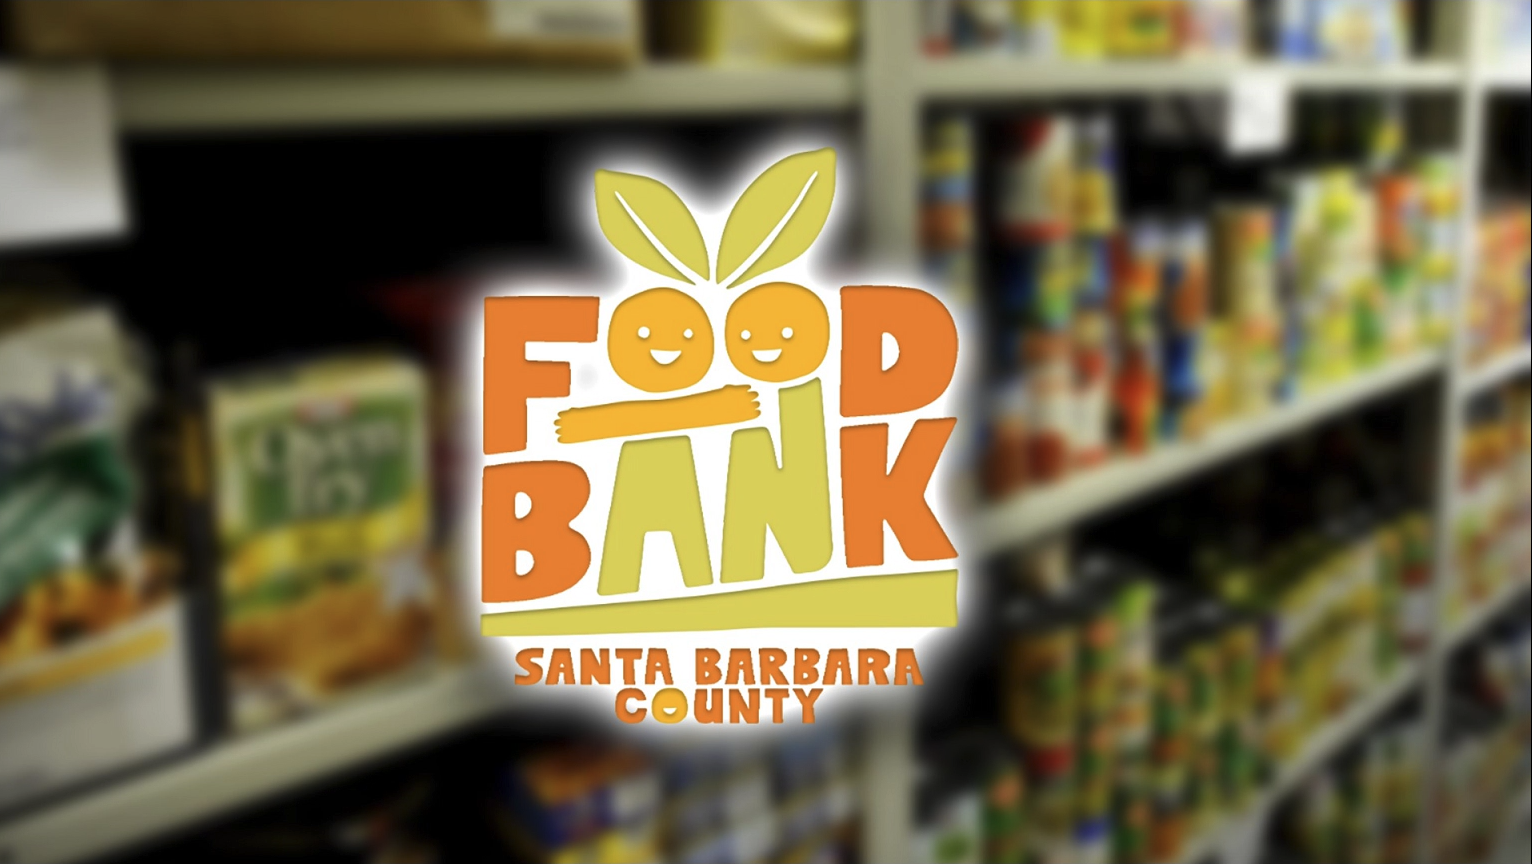 Santa Barbara County Food Bank generic